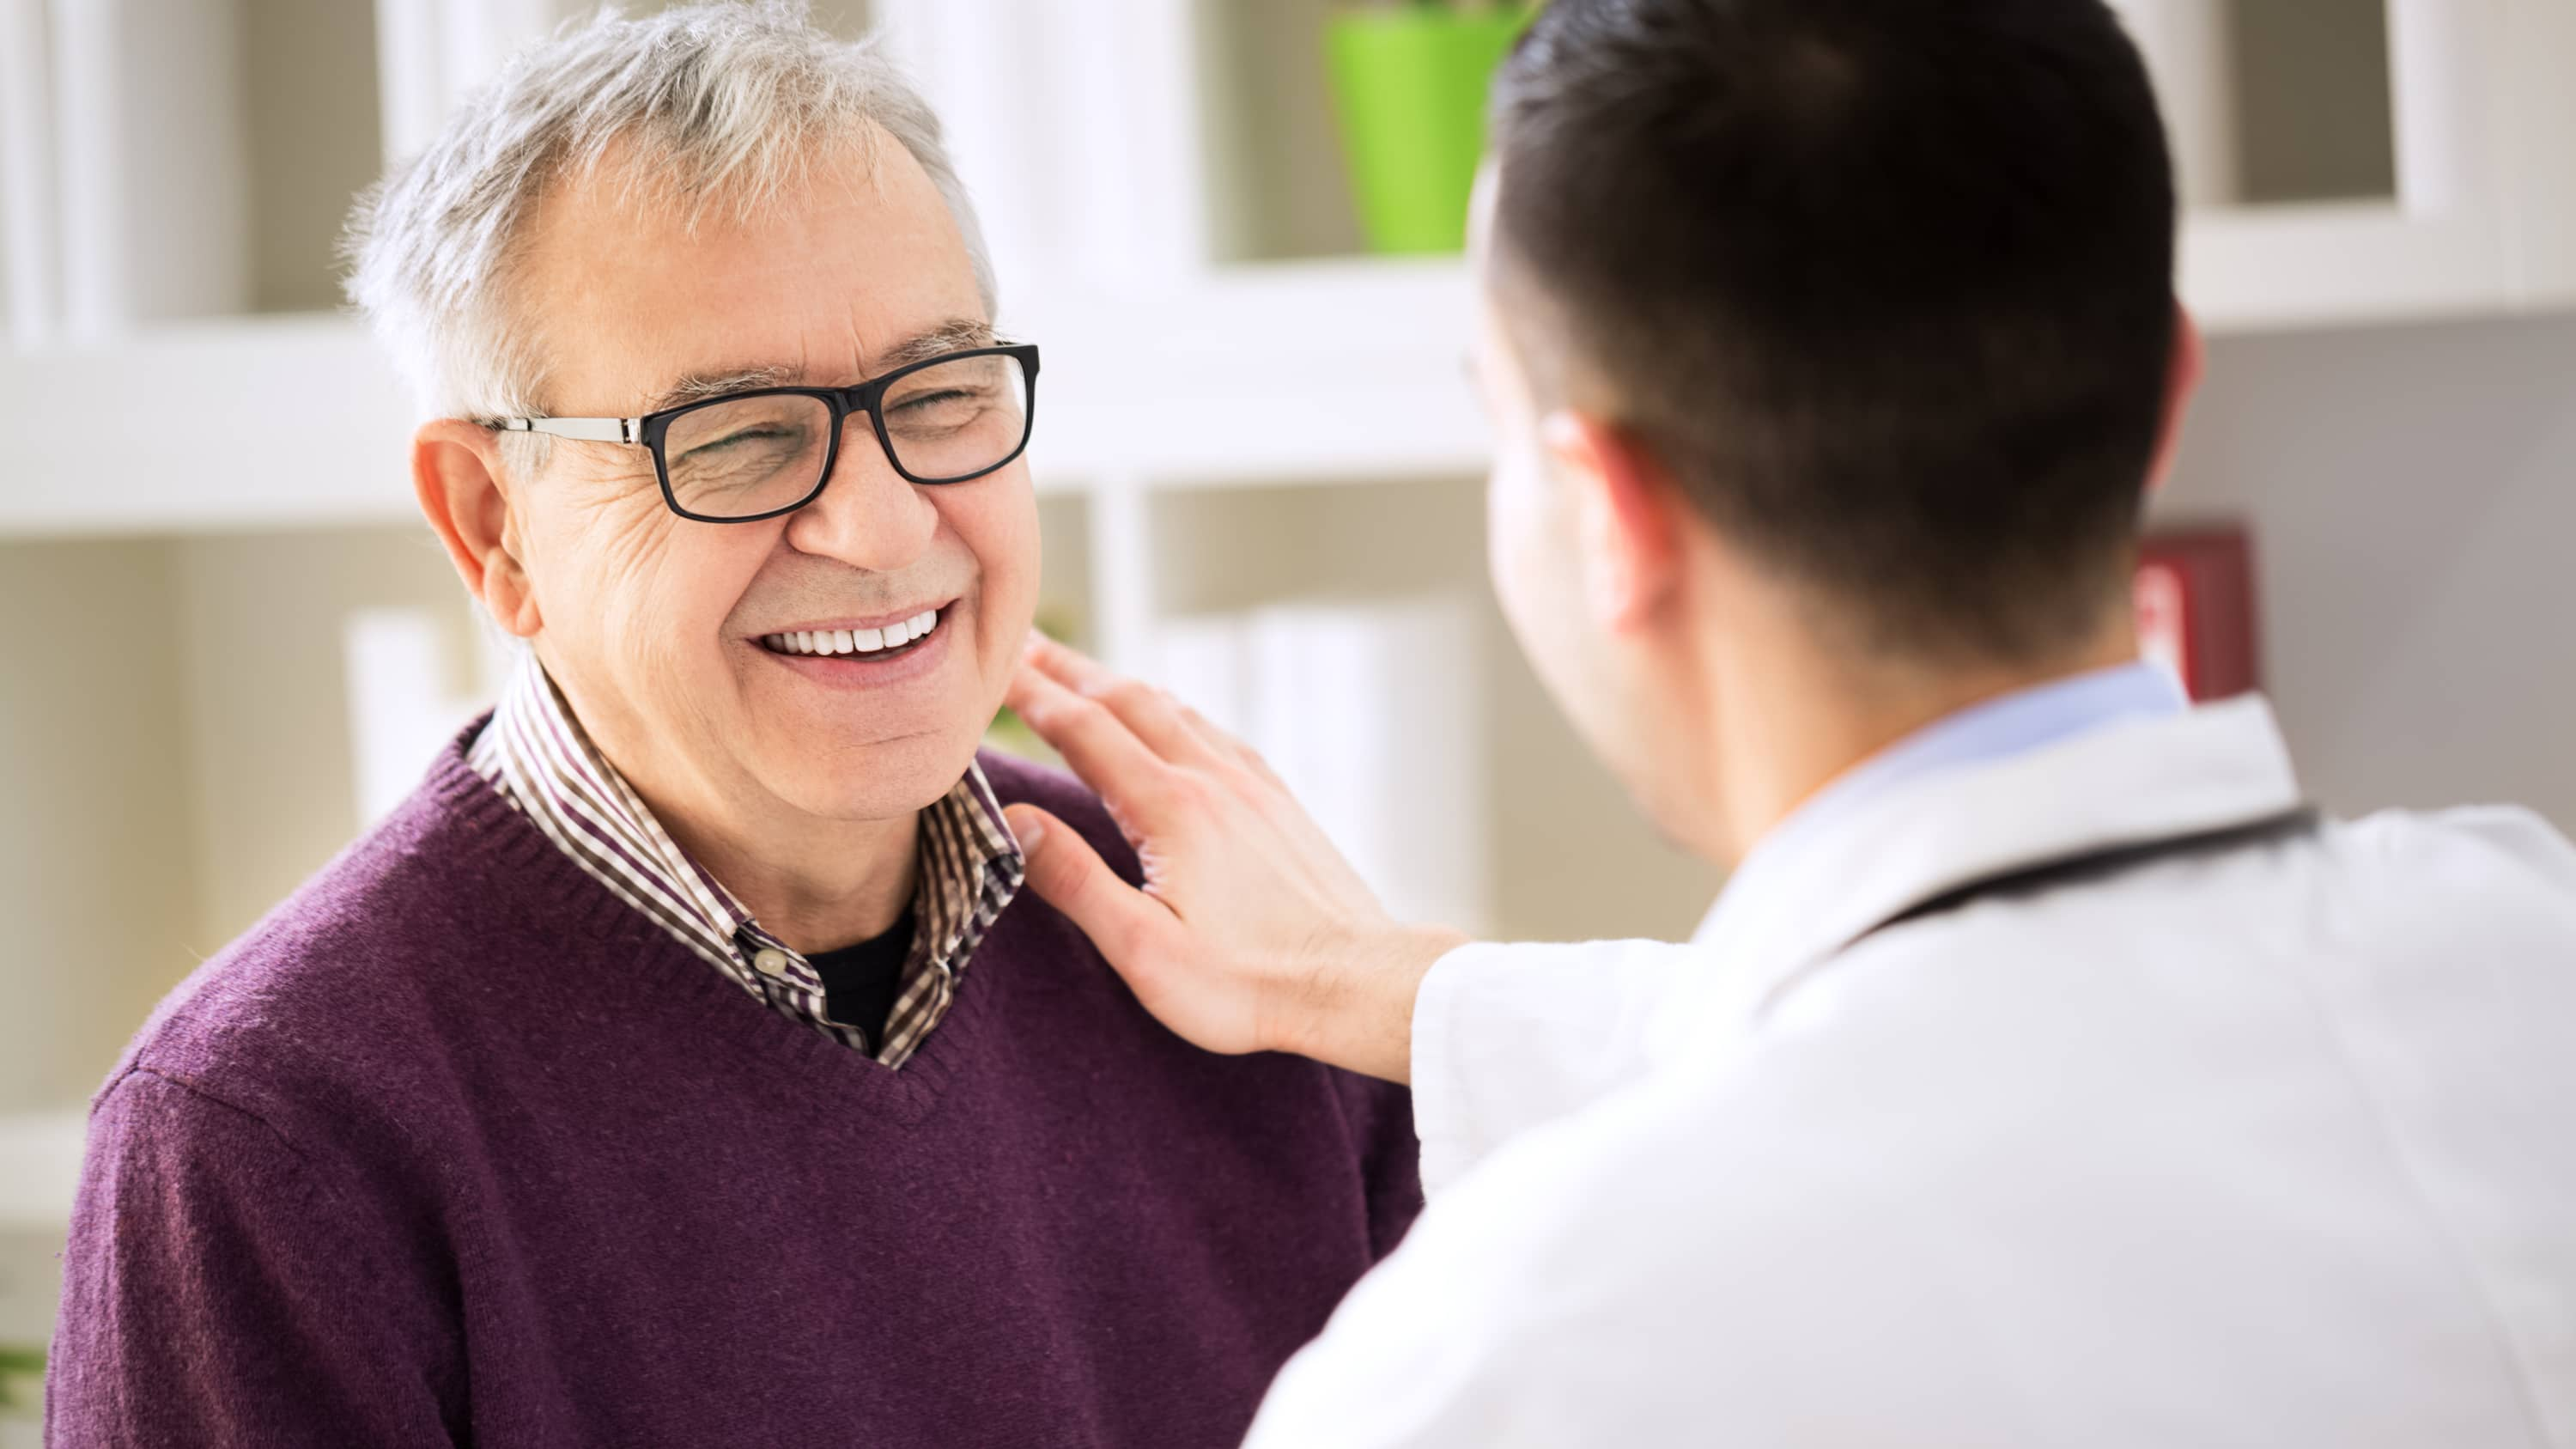 A patient possibly discussing prostate artery embolisation with his doctor.